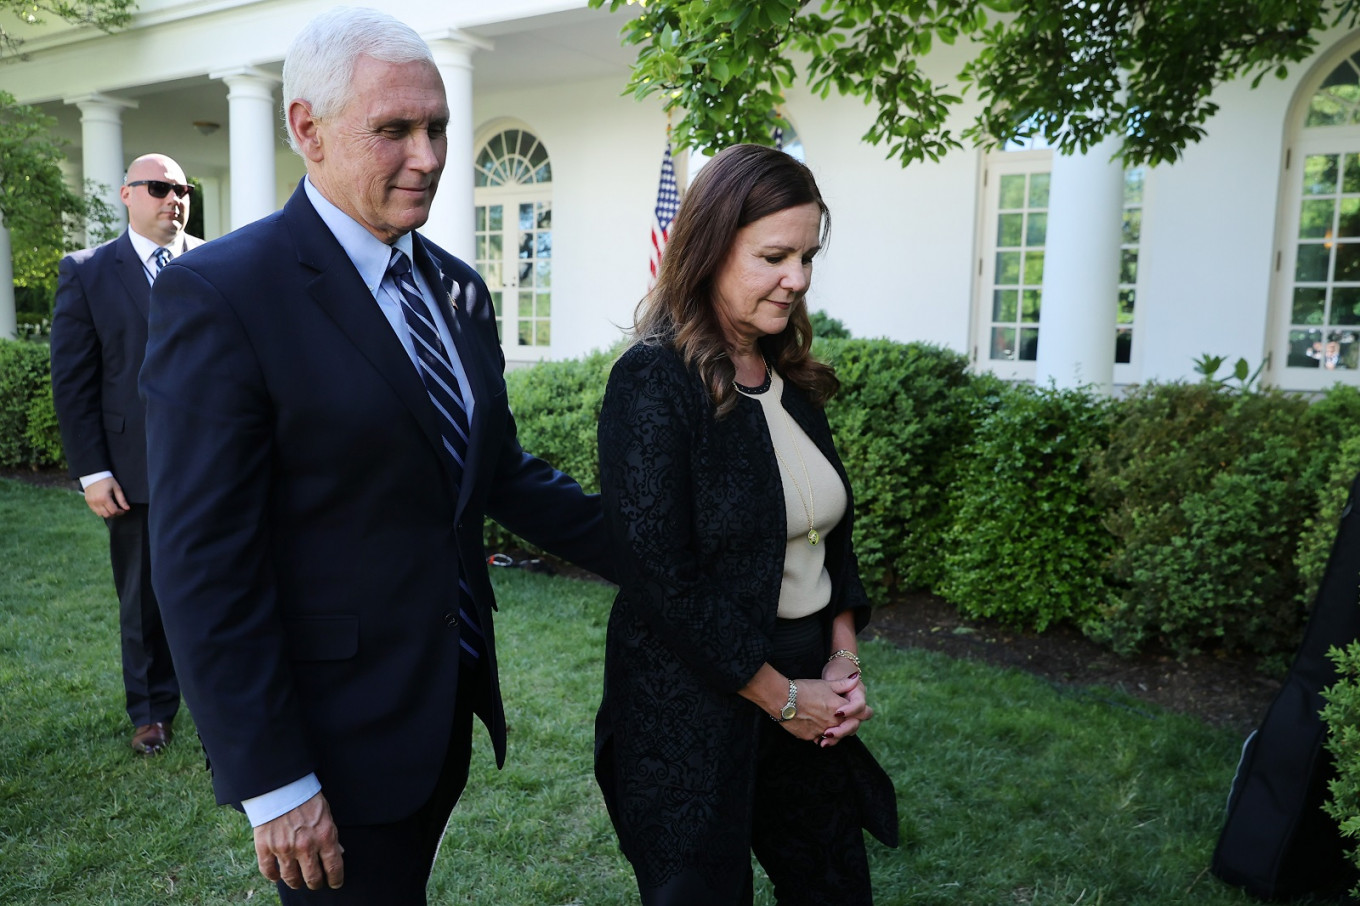 VP Pence keeping distance from White House staff